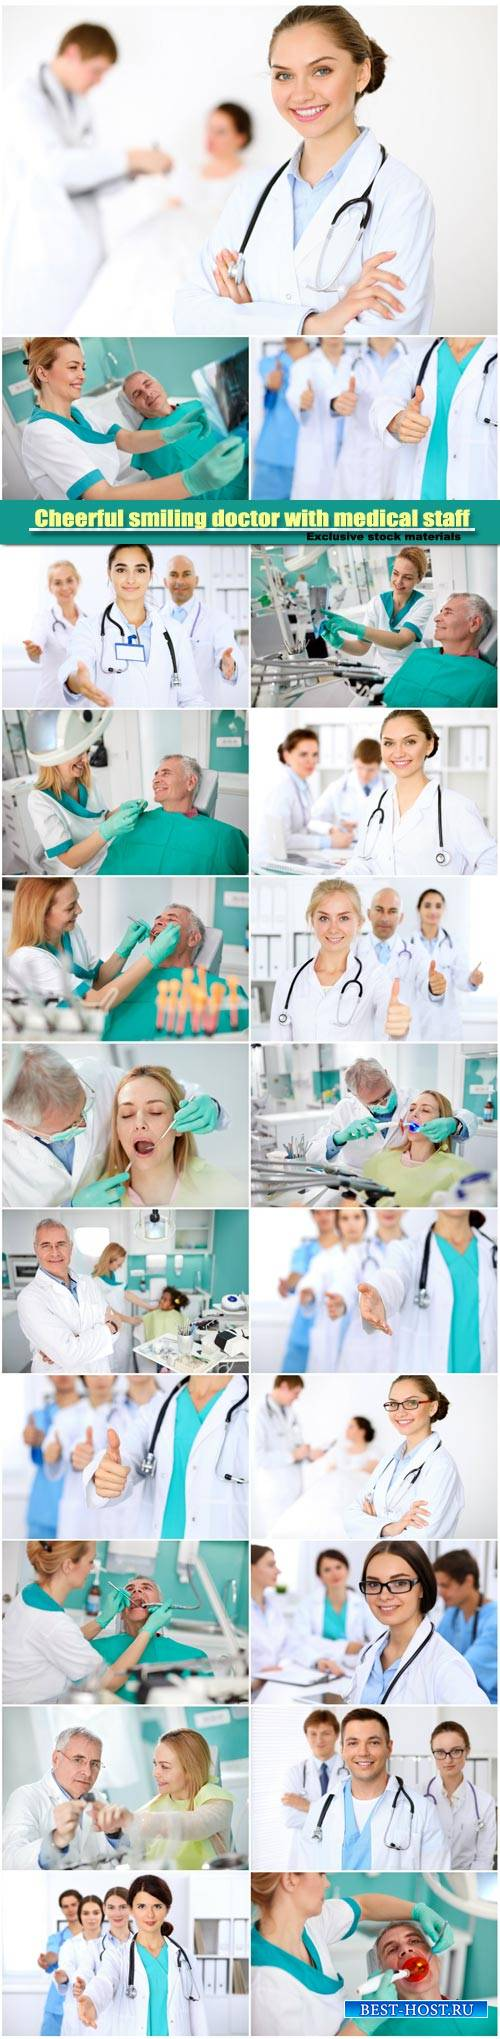 Cheerful smiling doctor with medical staff at the hospital, experienced den ...